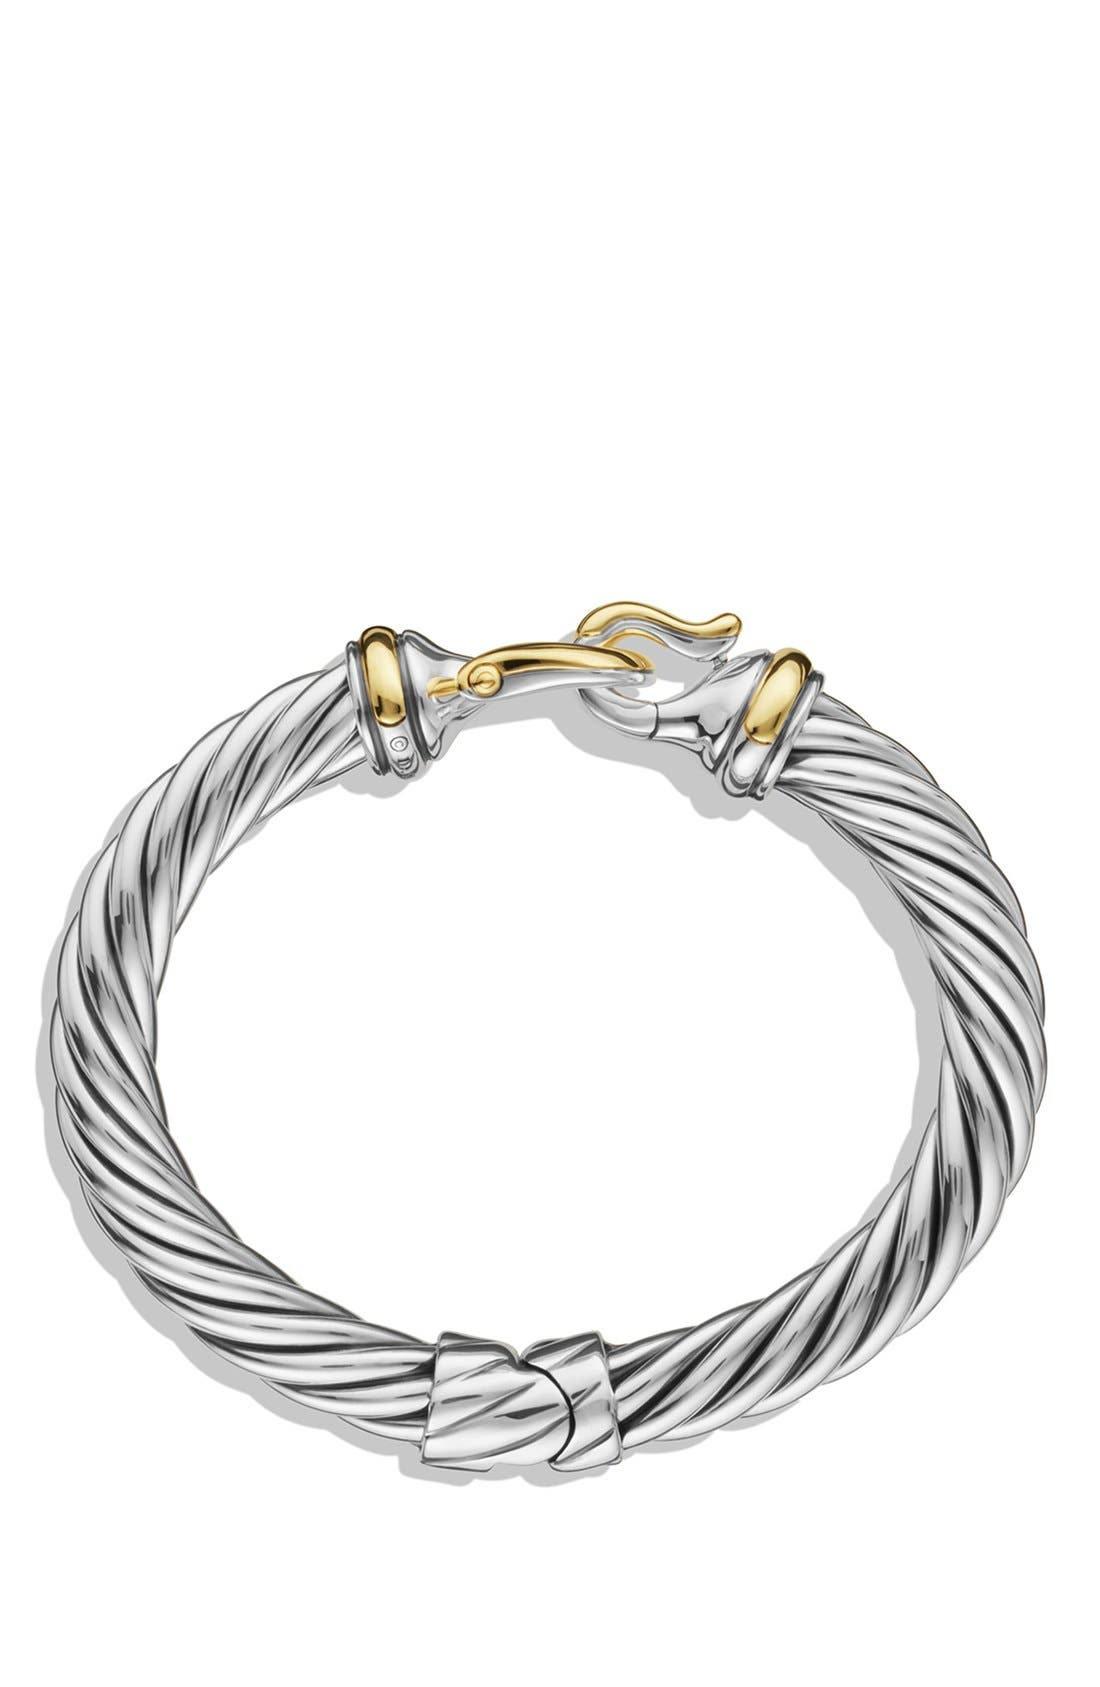 'Buckle' Cable Bracelet with Gold,                             Alternate thumbnail 2, color,                             TWO TONE